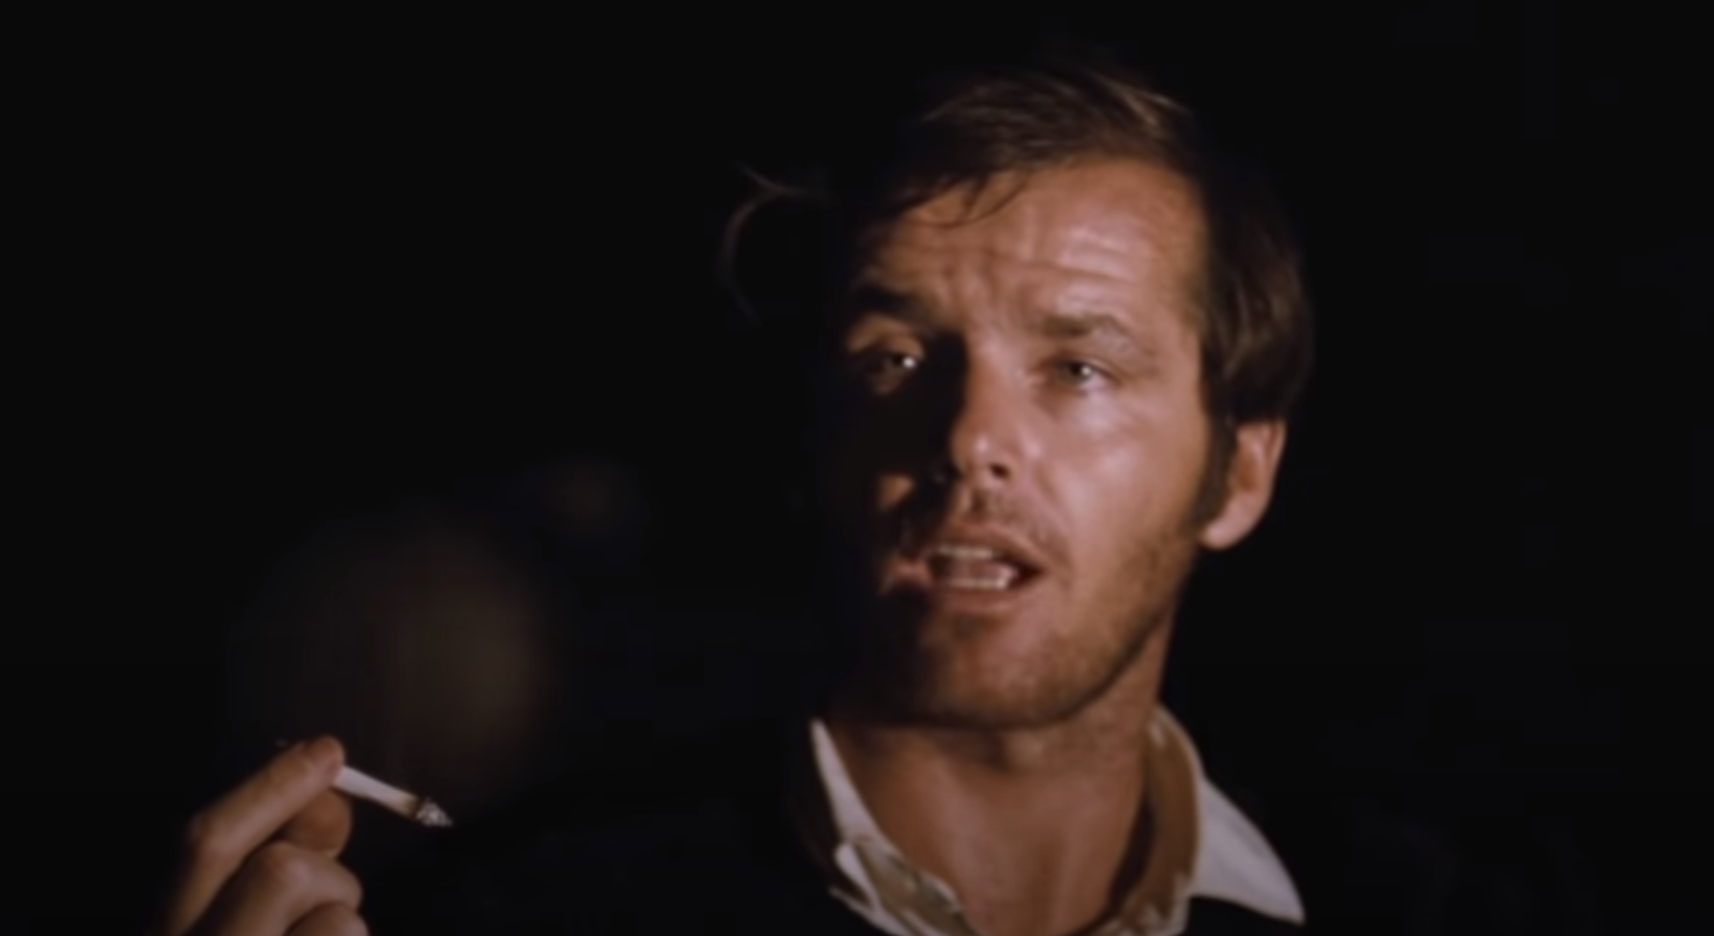 Nicholson holding a joint in Easy Rider